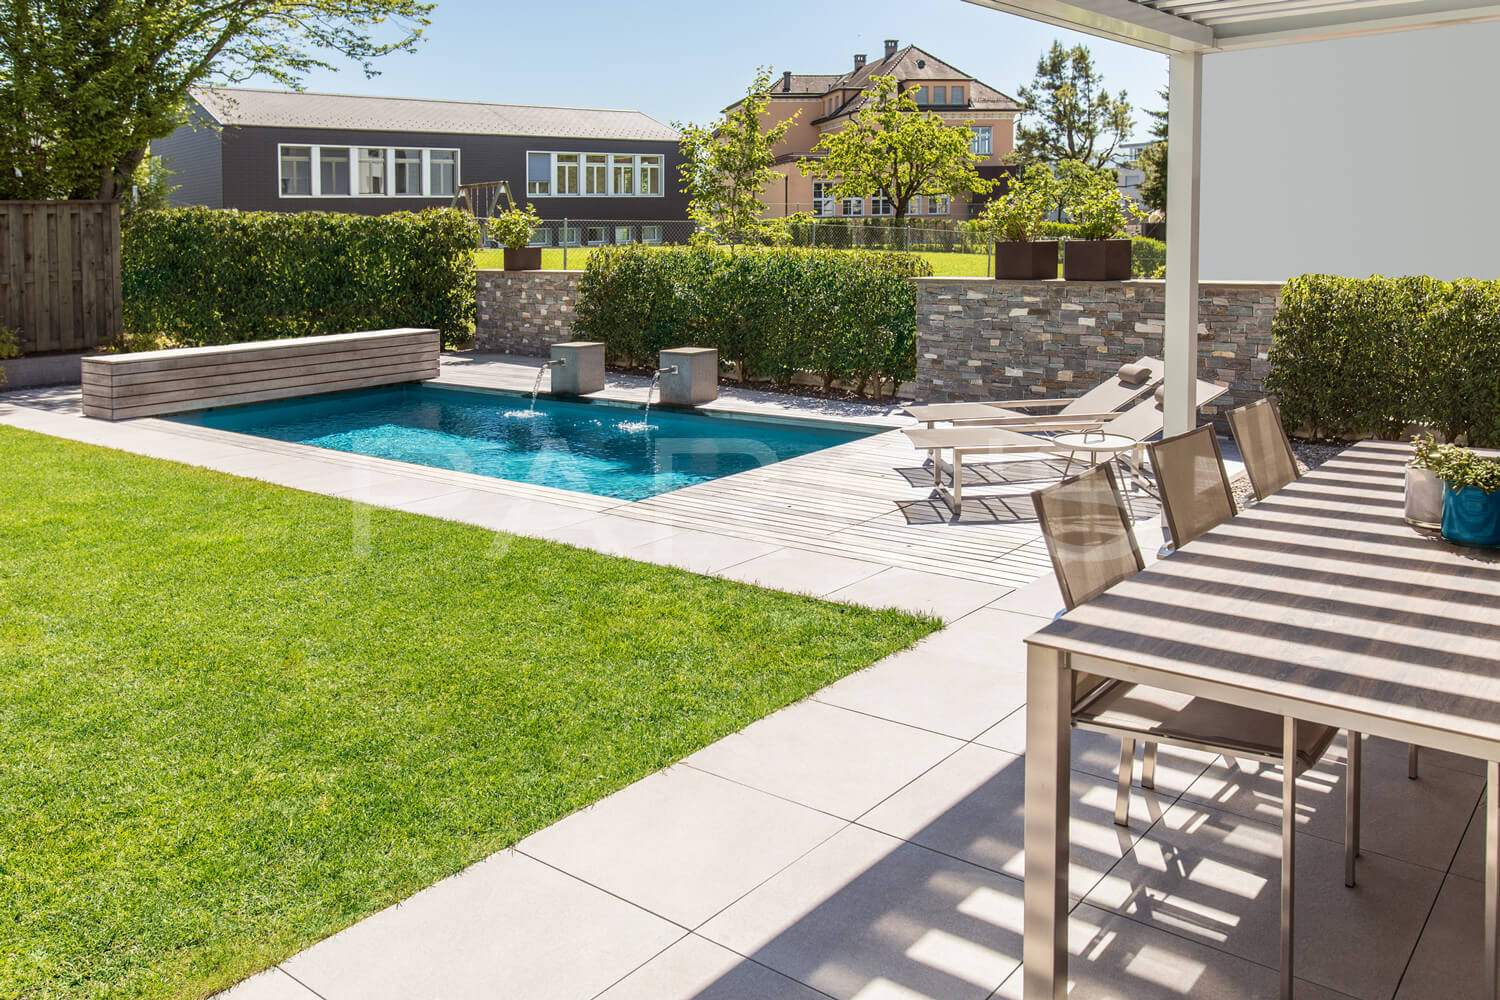 5 Swimming Pool Pergola Garten